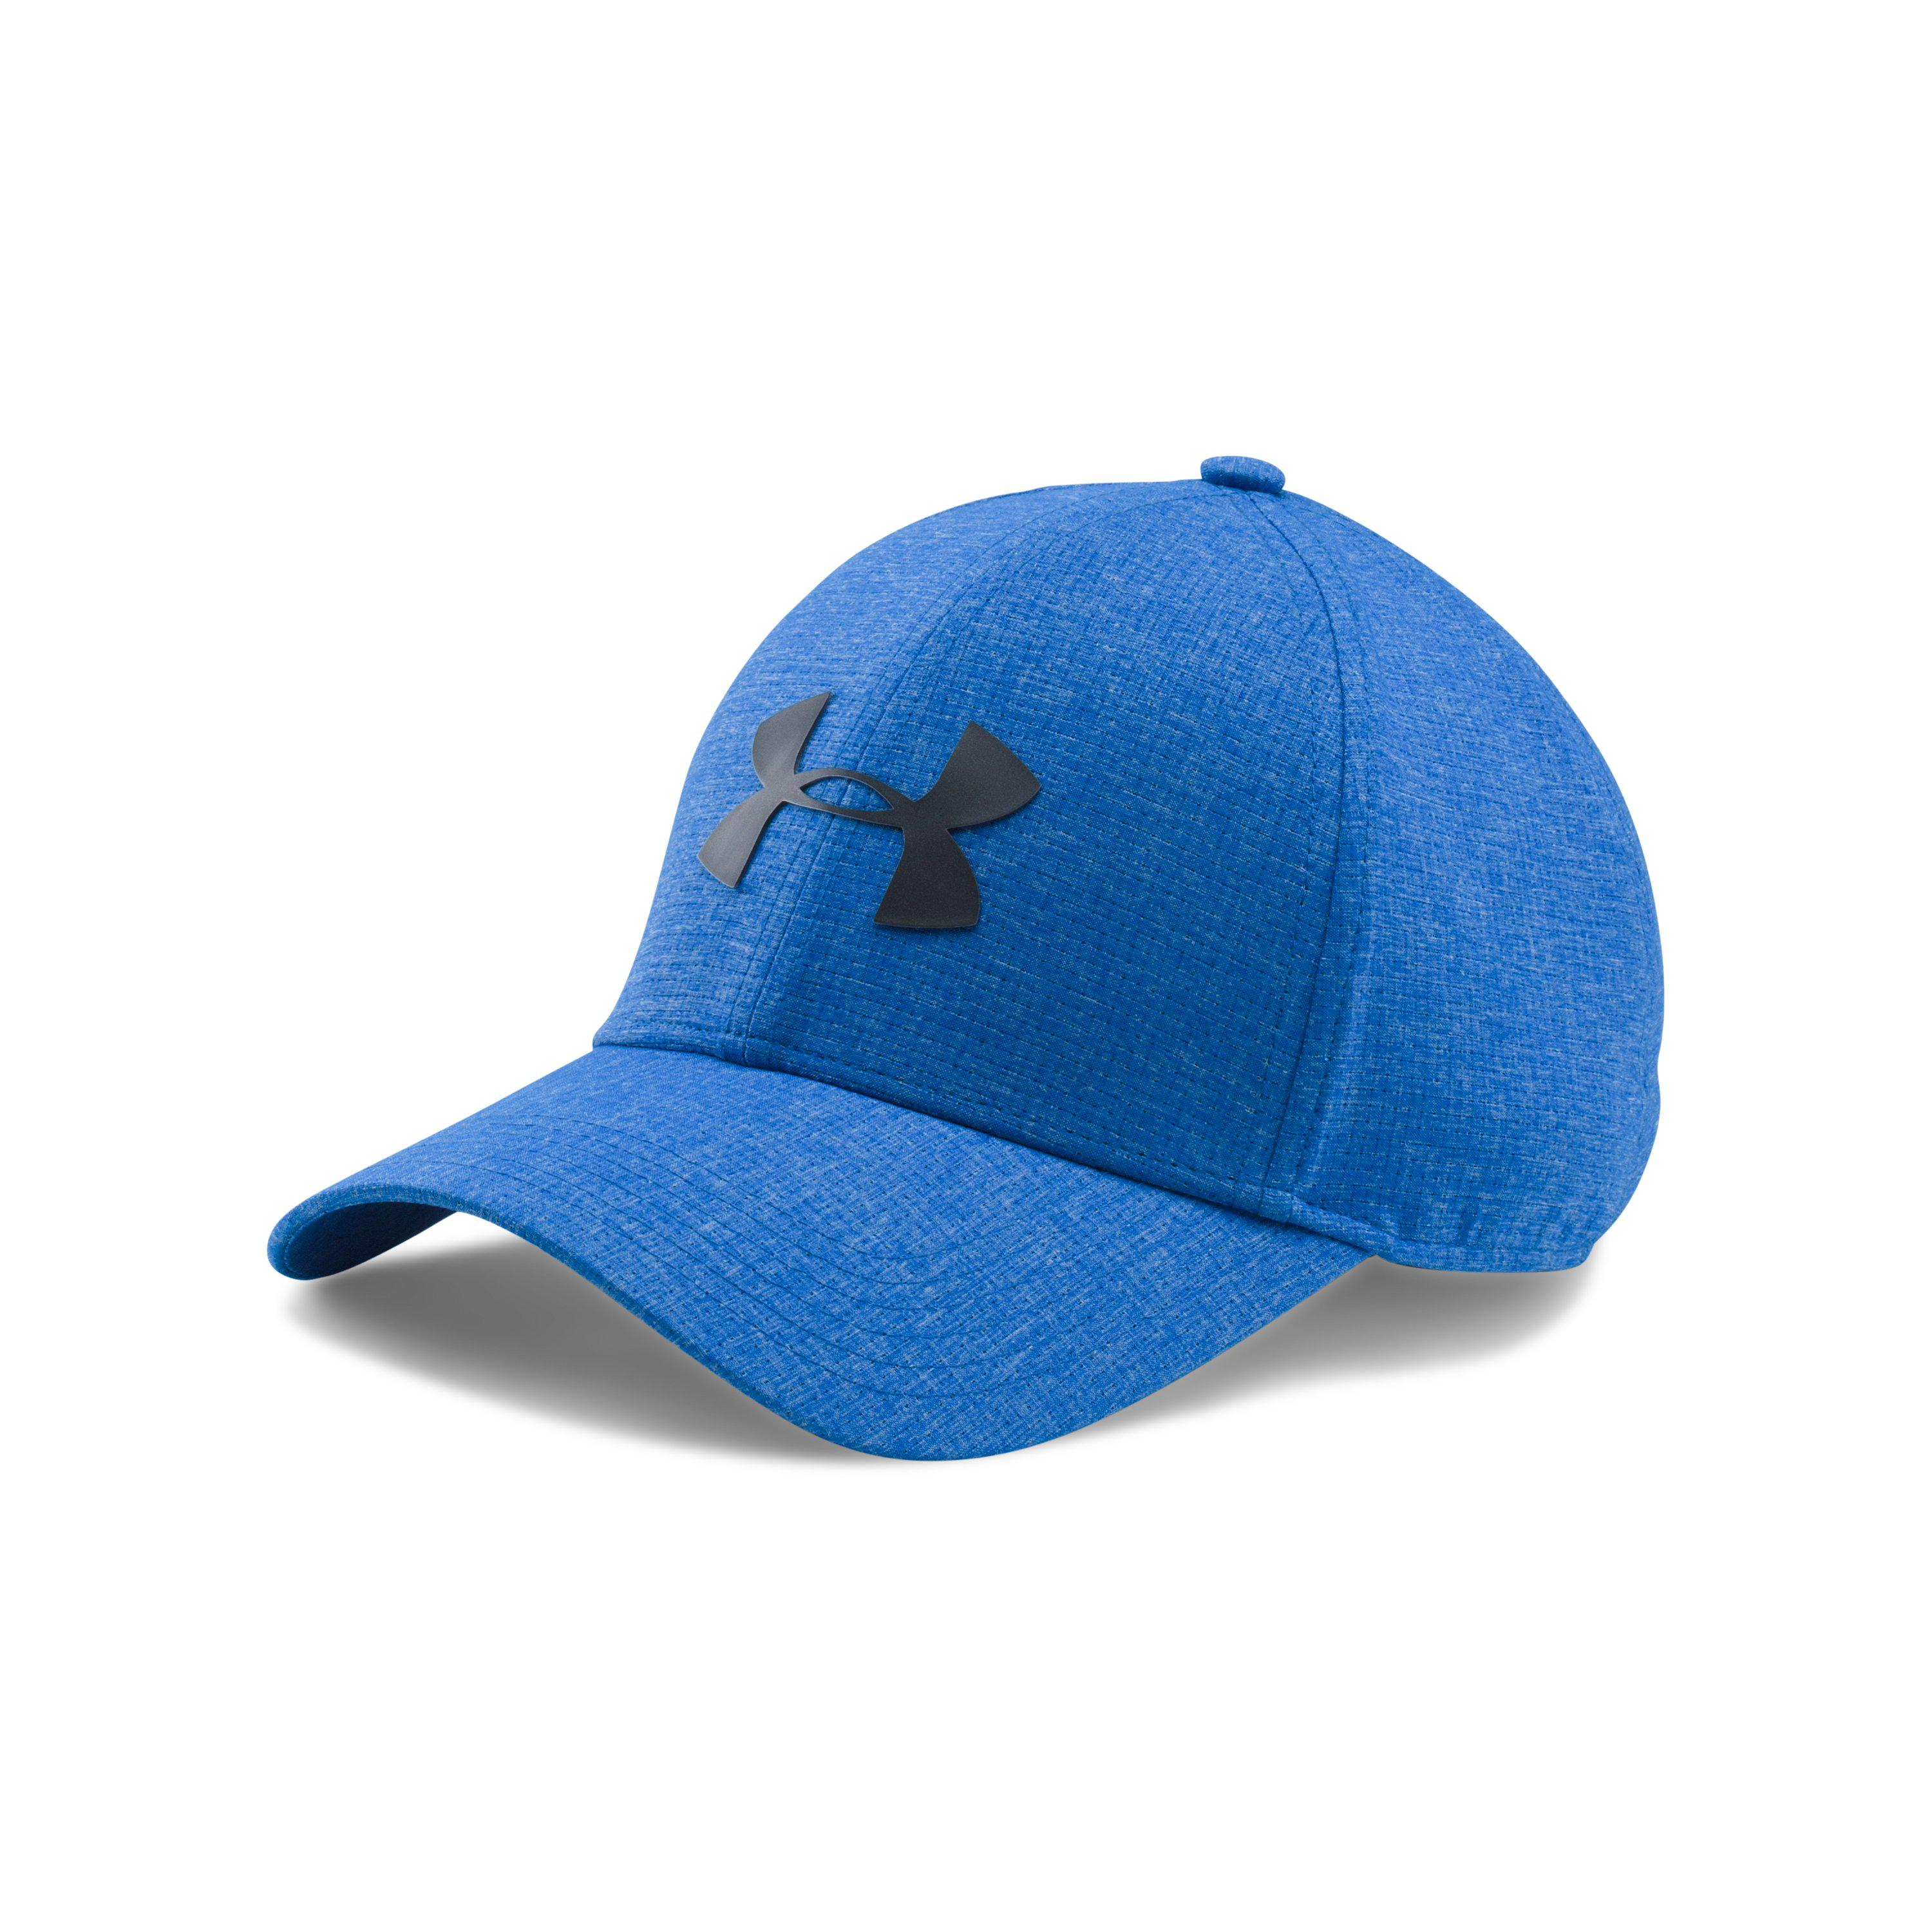 90411e37a76 Lyst - Under Armour Men s Ua Coolswitch Armourventtm 2.0 Cap in Blue ...